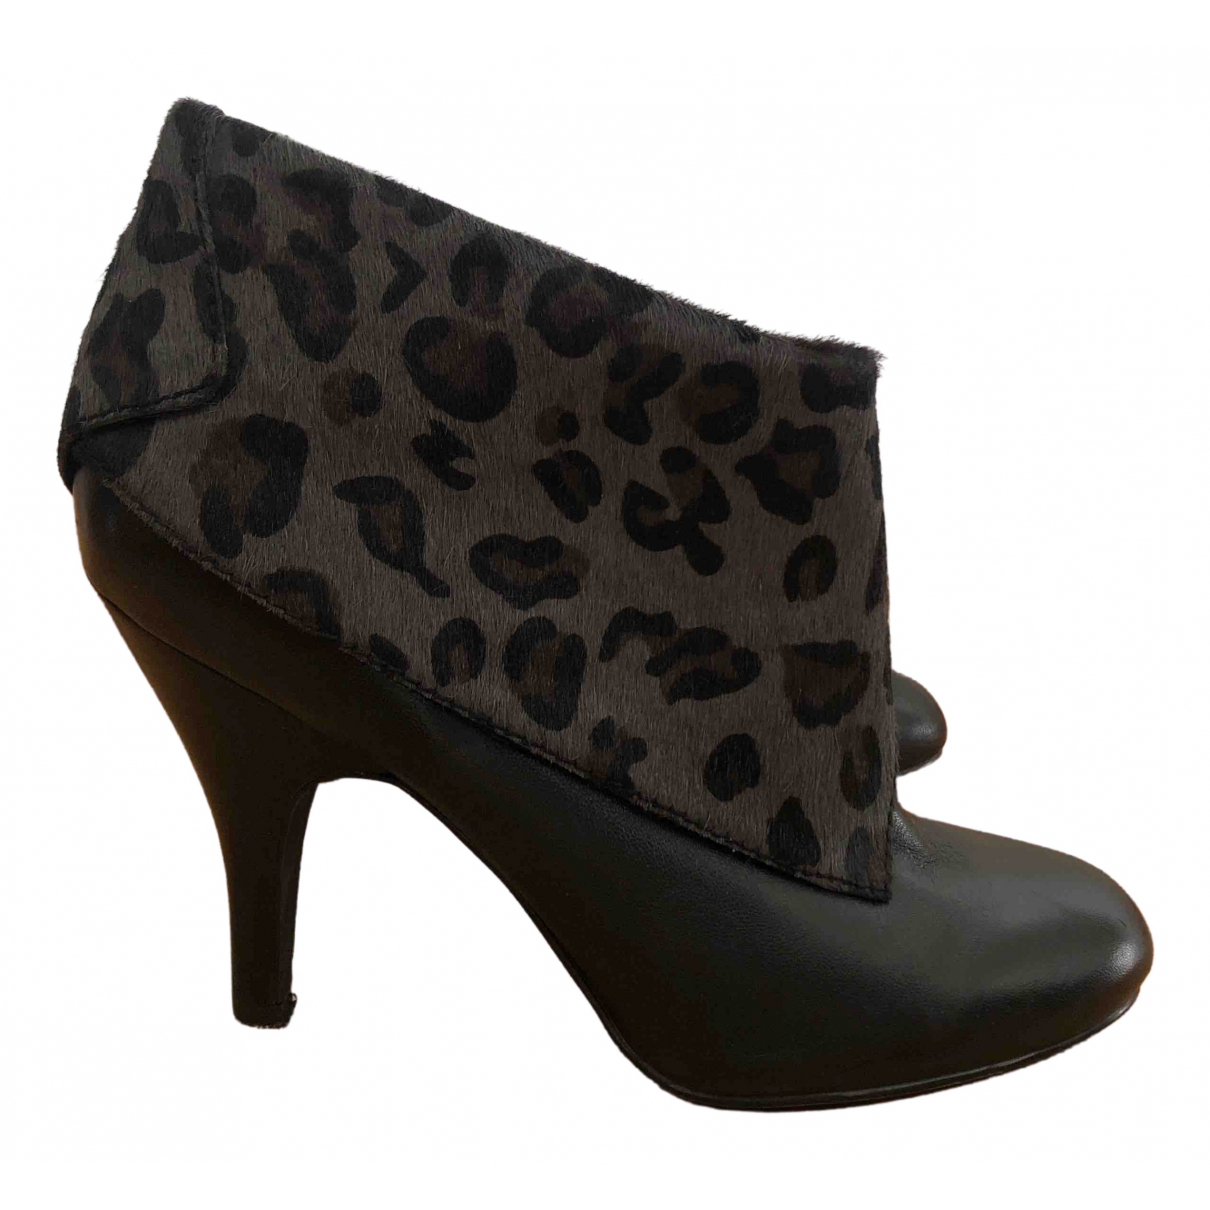 Nine West N Black Leather Ankle boots for Women 39 EU